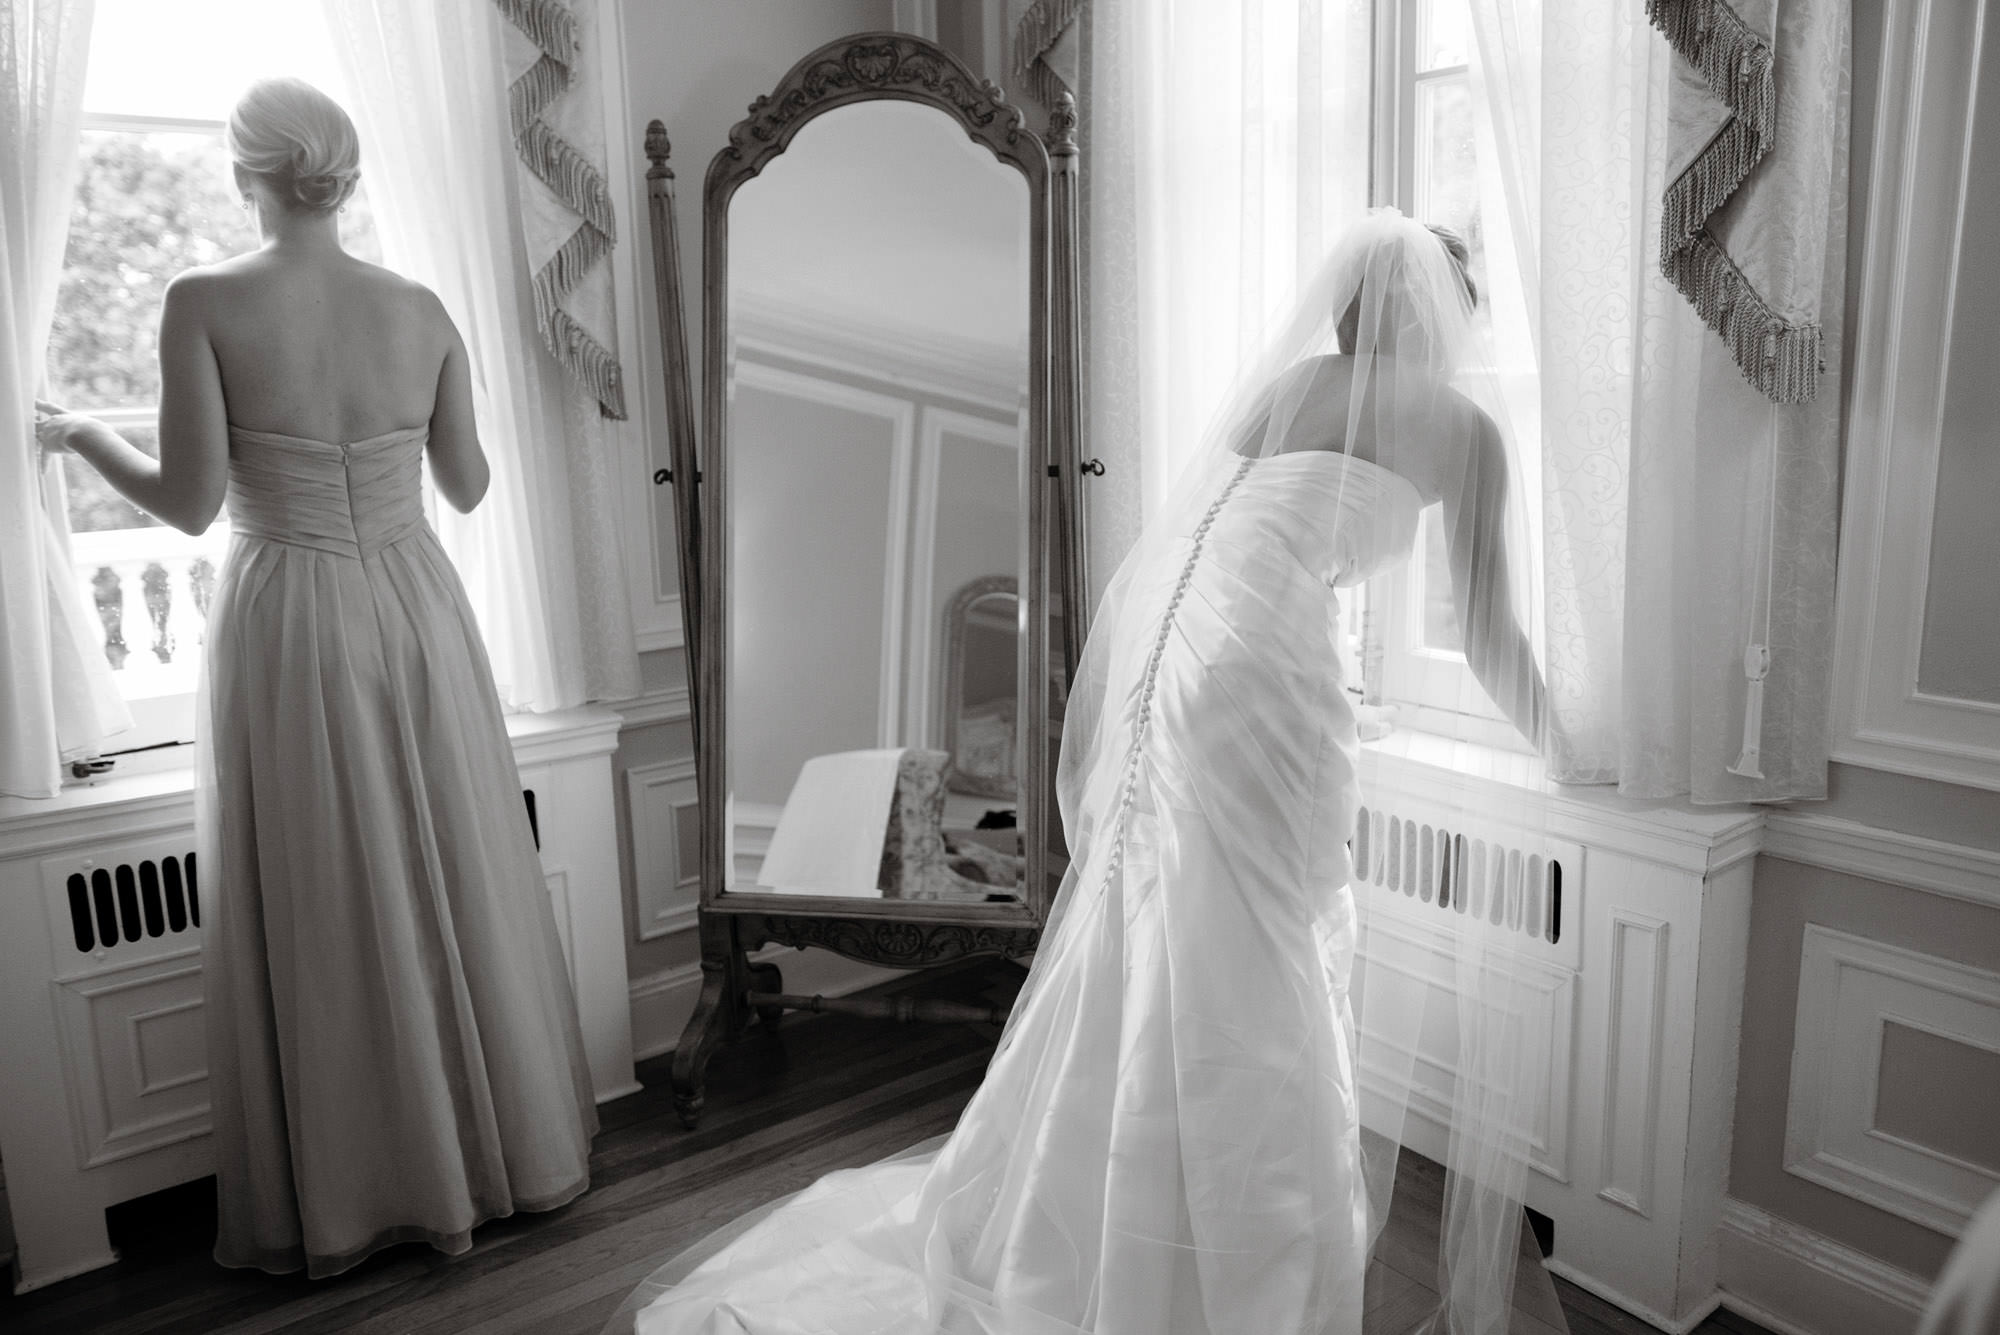 The bride looks out the window at her arriving guests on her Oxon Hill Manor wedding day.